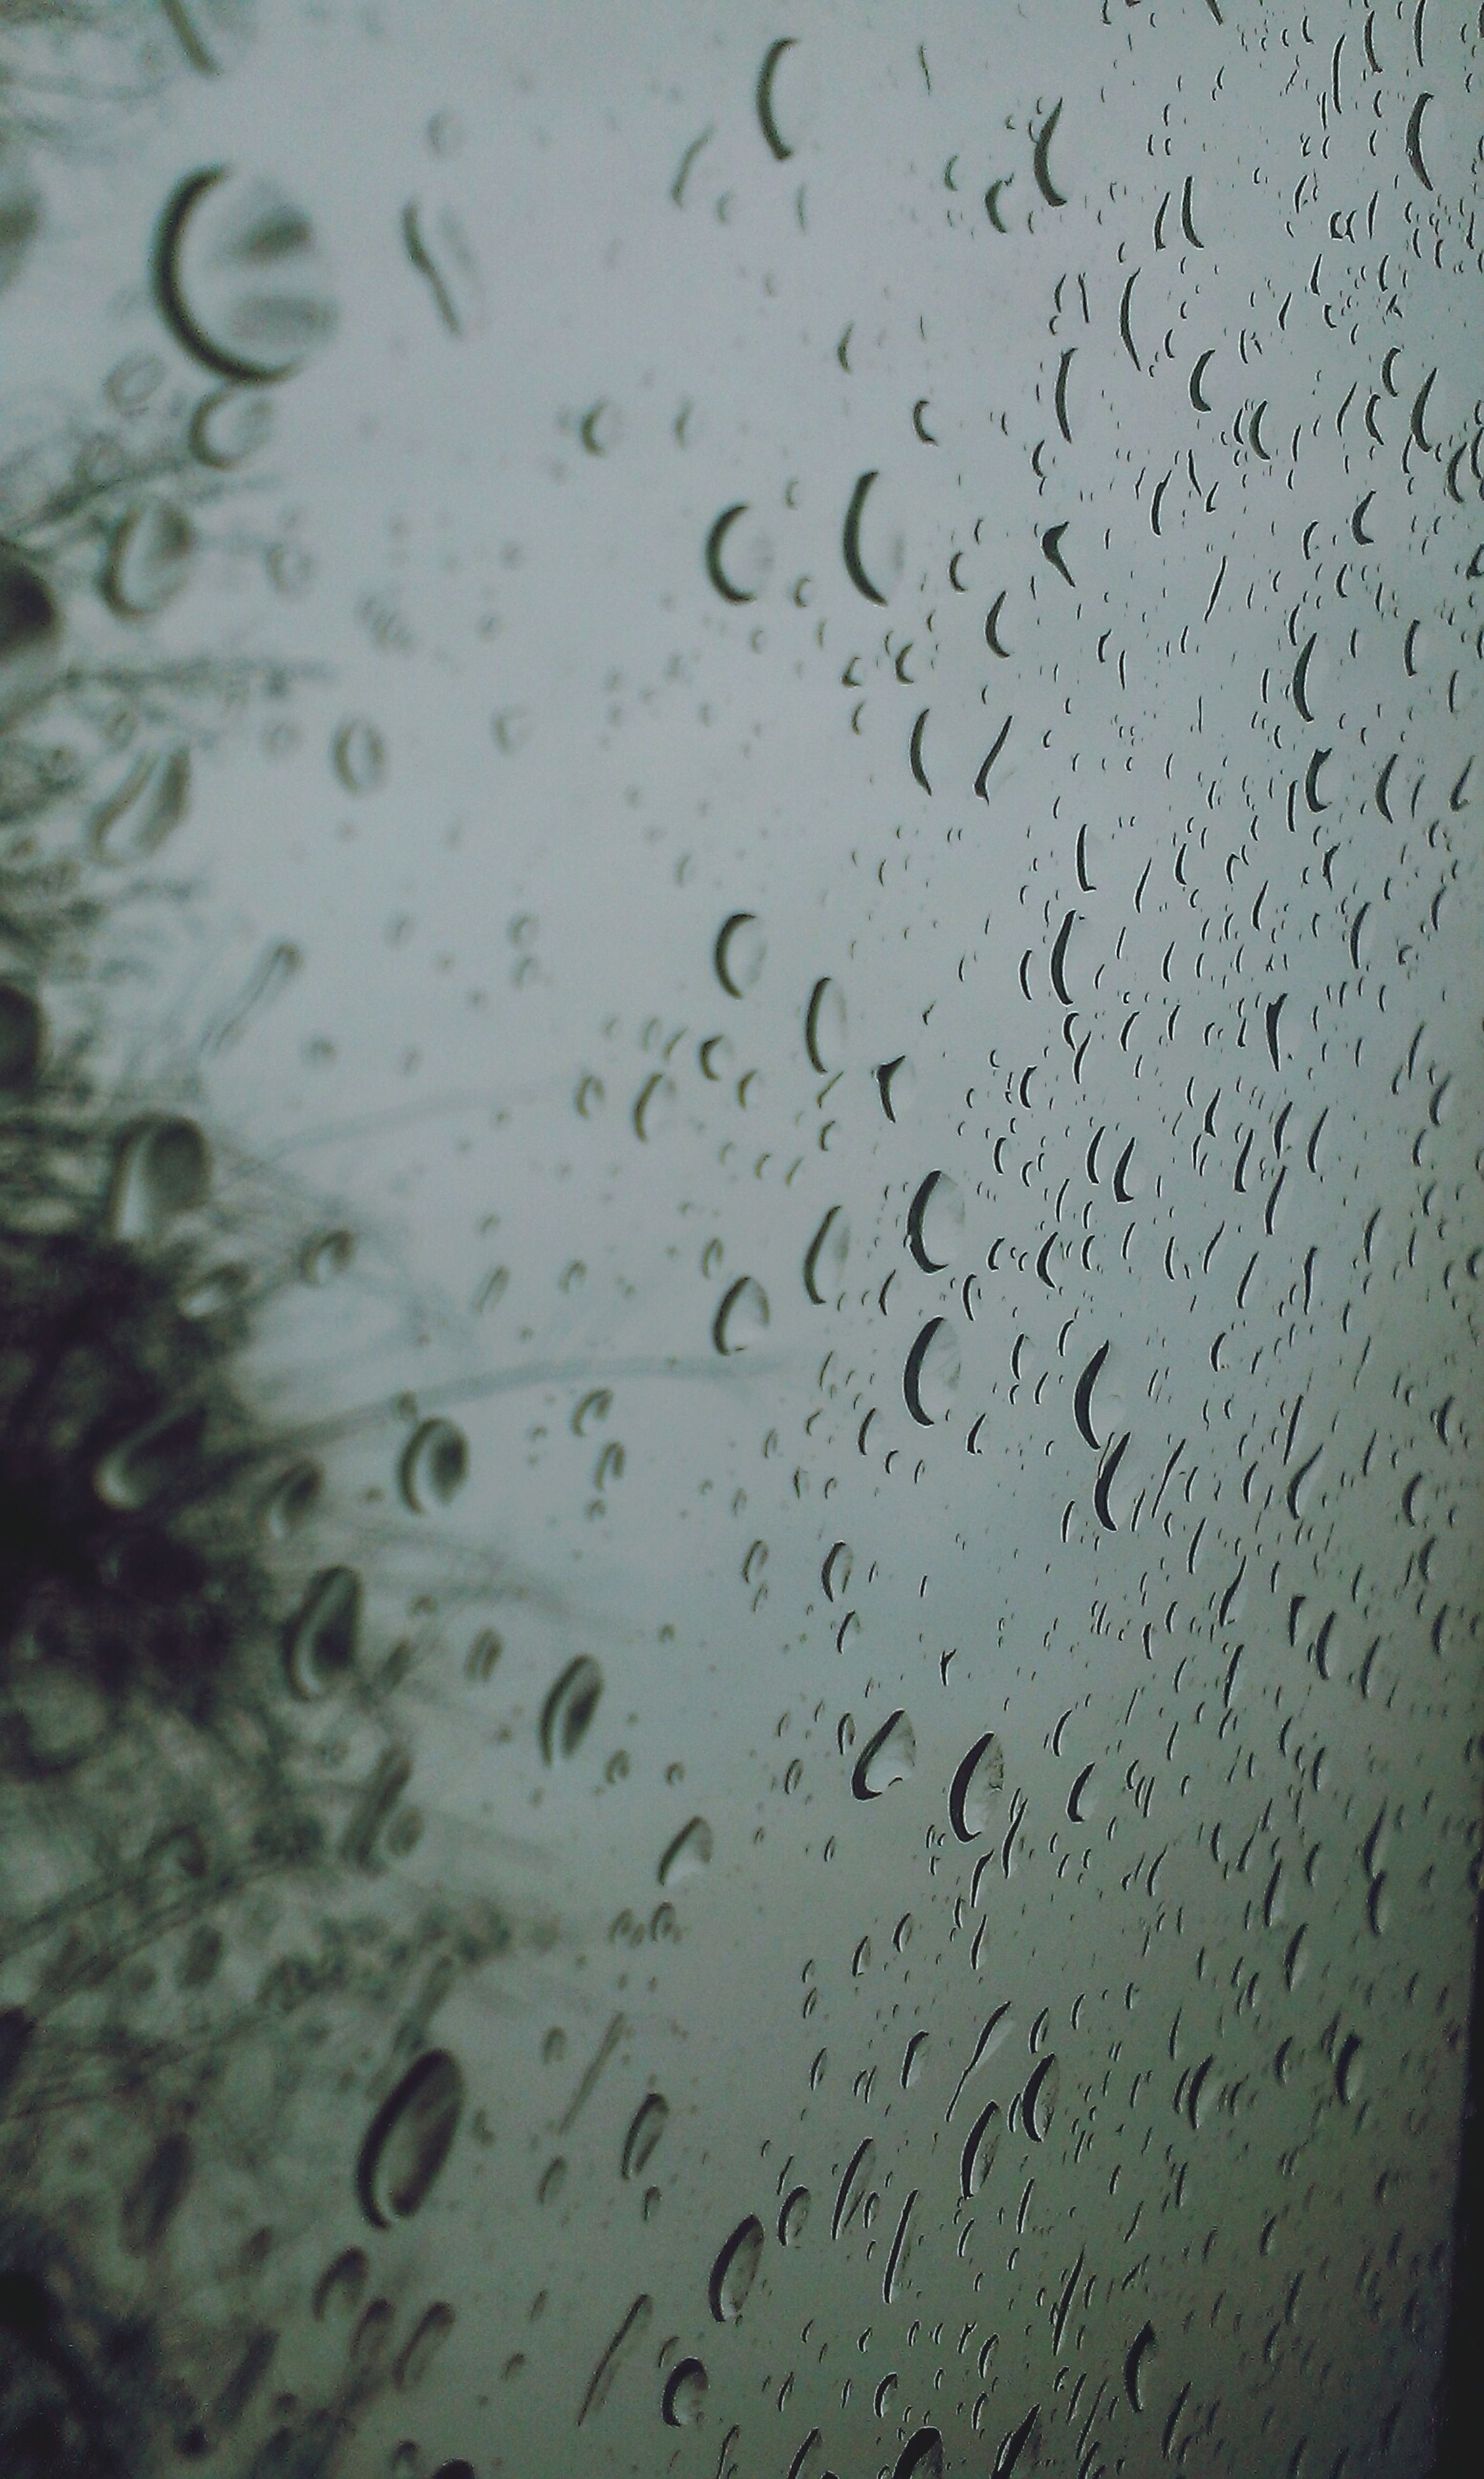 drop, wet, window, water, indoors, transparent, glass - material, rain, full frame, backgrounds, raindrop, weather, glass, season, close-up, focus on foreground, sky, no people, day, nature